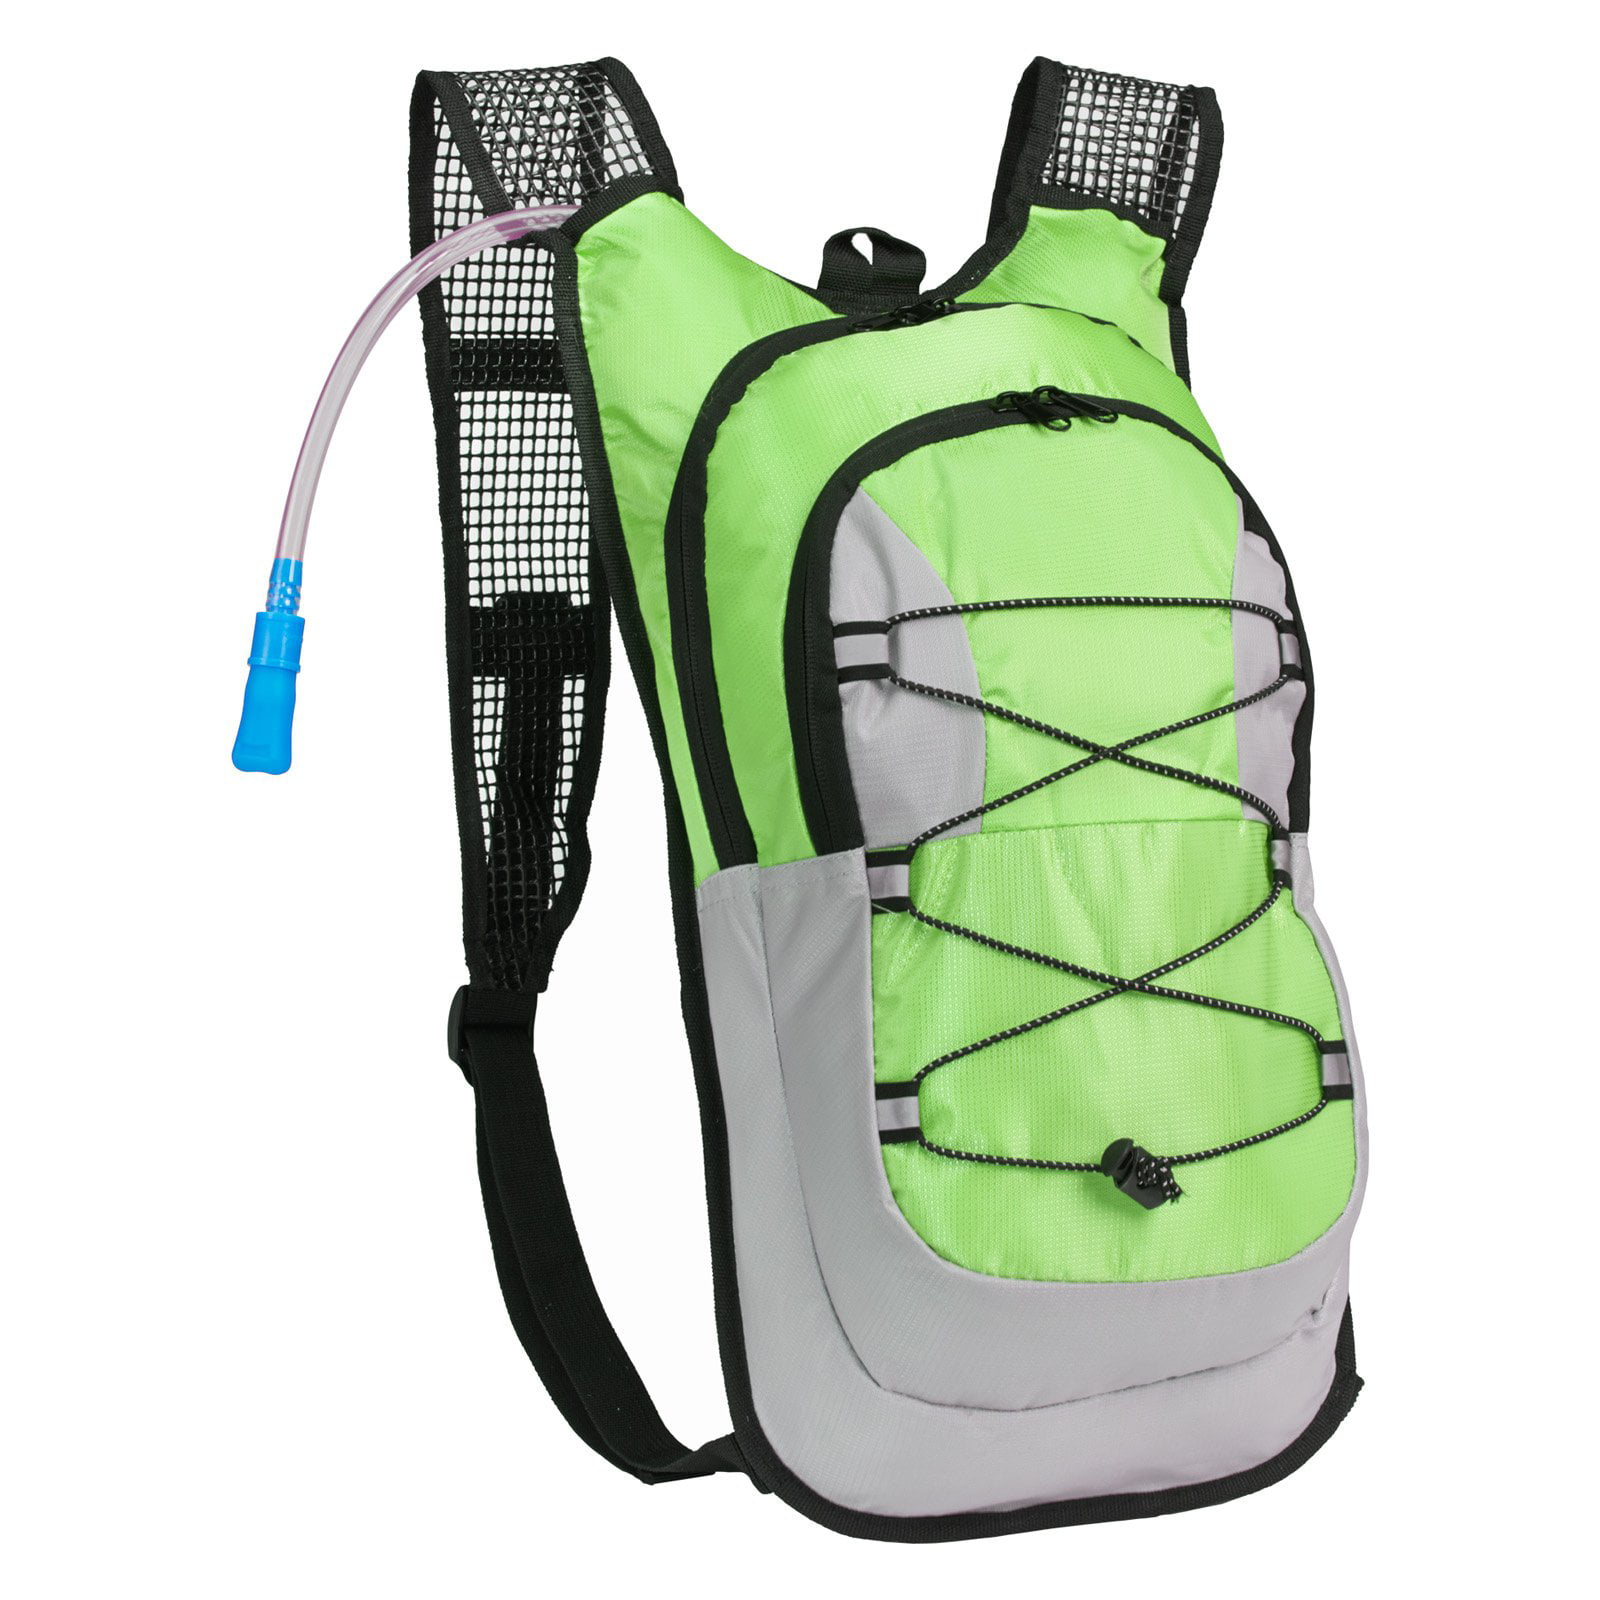 Click here to buy Equipped Outdoors Hydration Pack 2 Liter Water Bladder with Extra Large Storage Compartment Backpack by Equipped Outdoors.